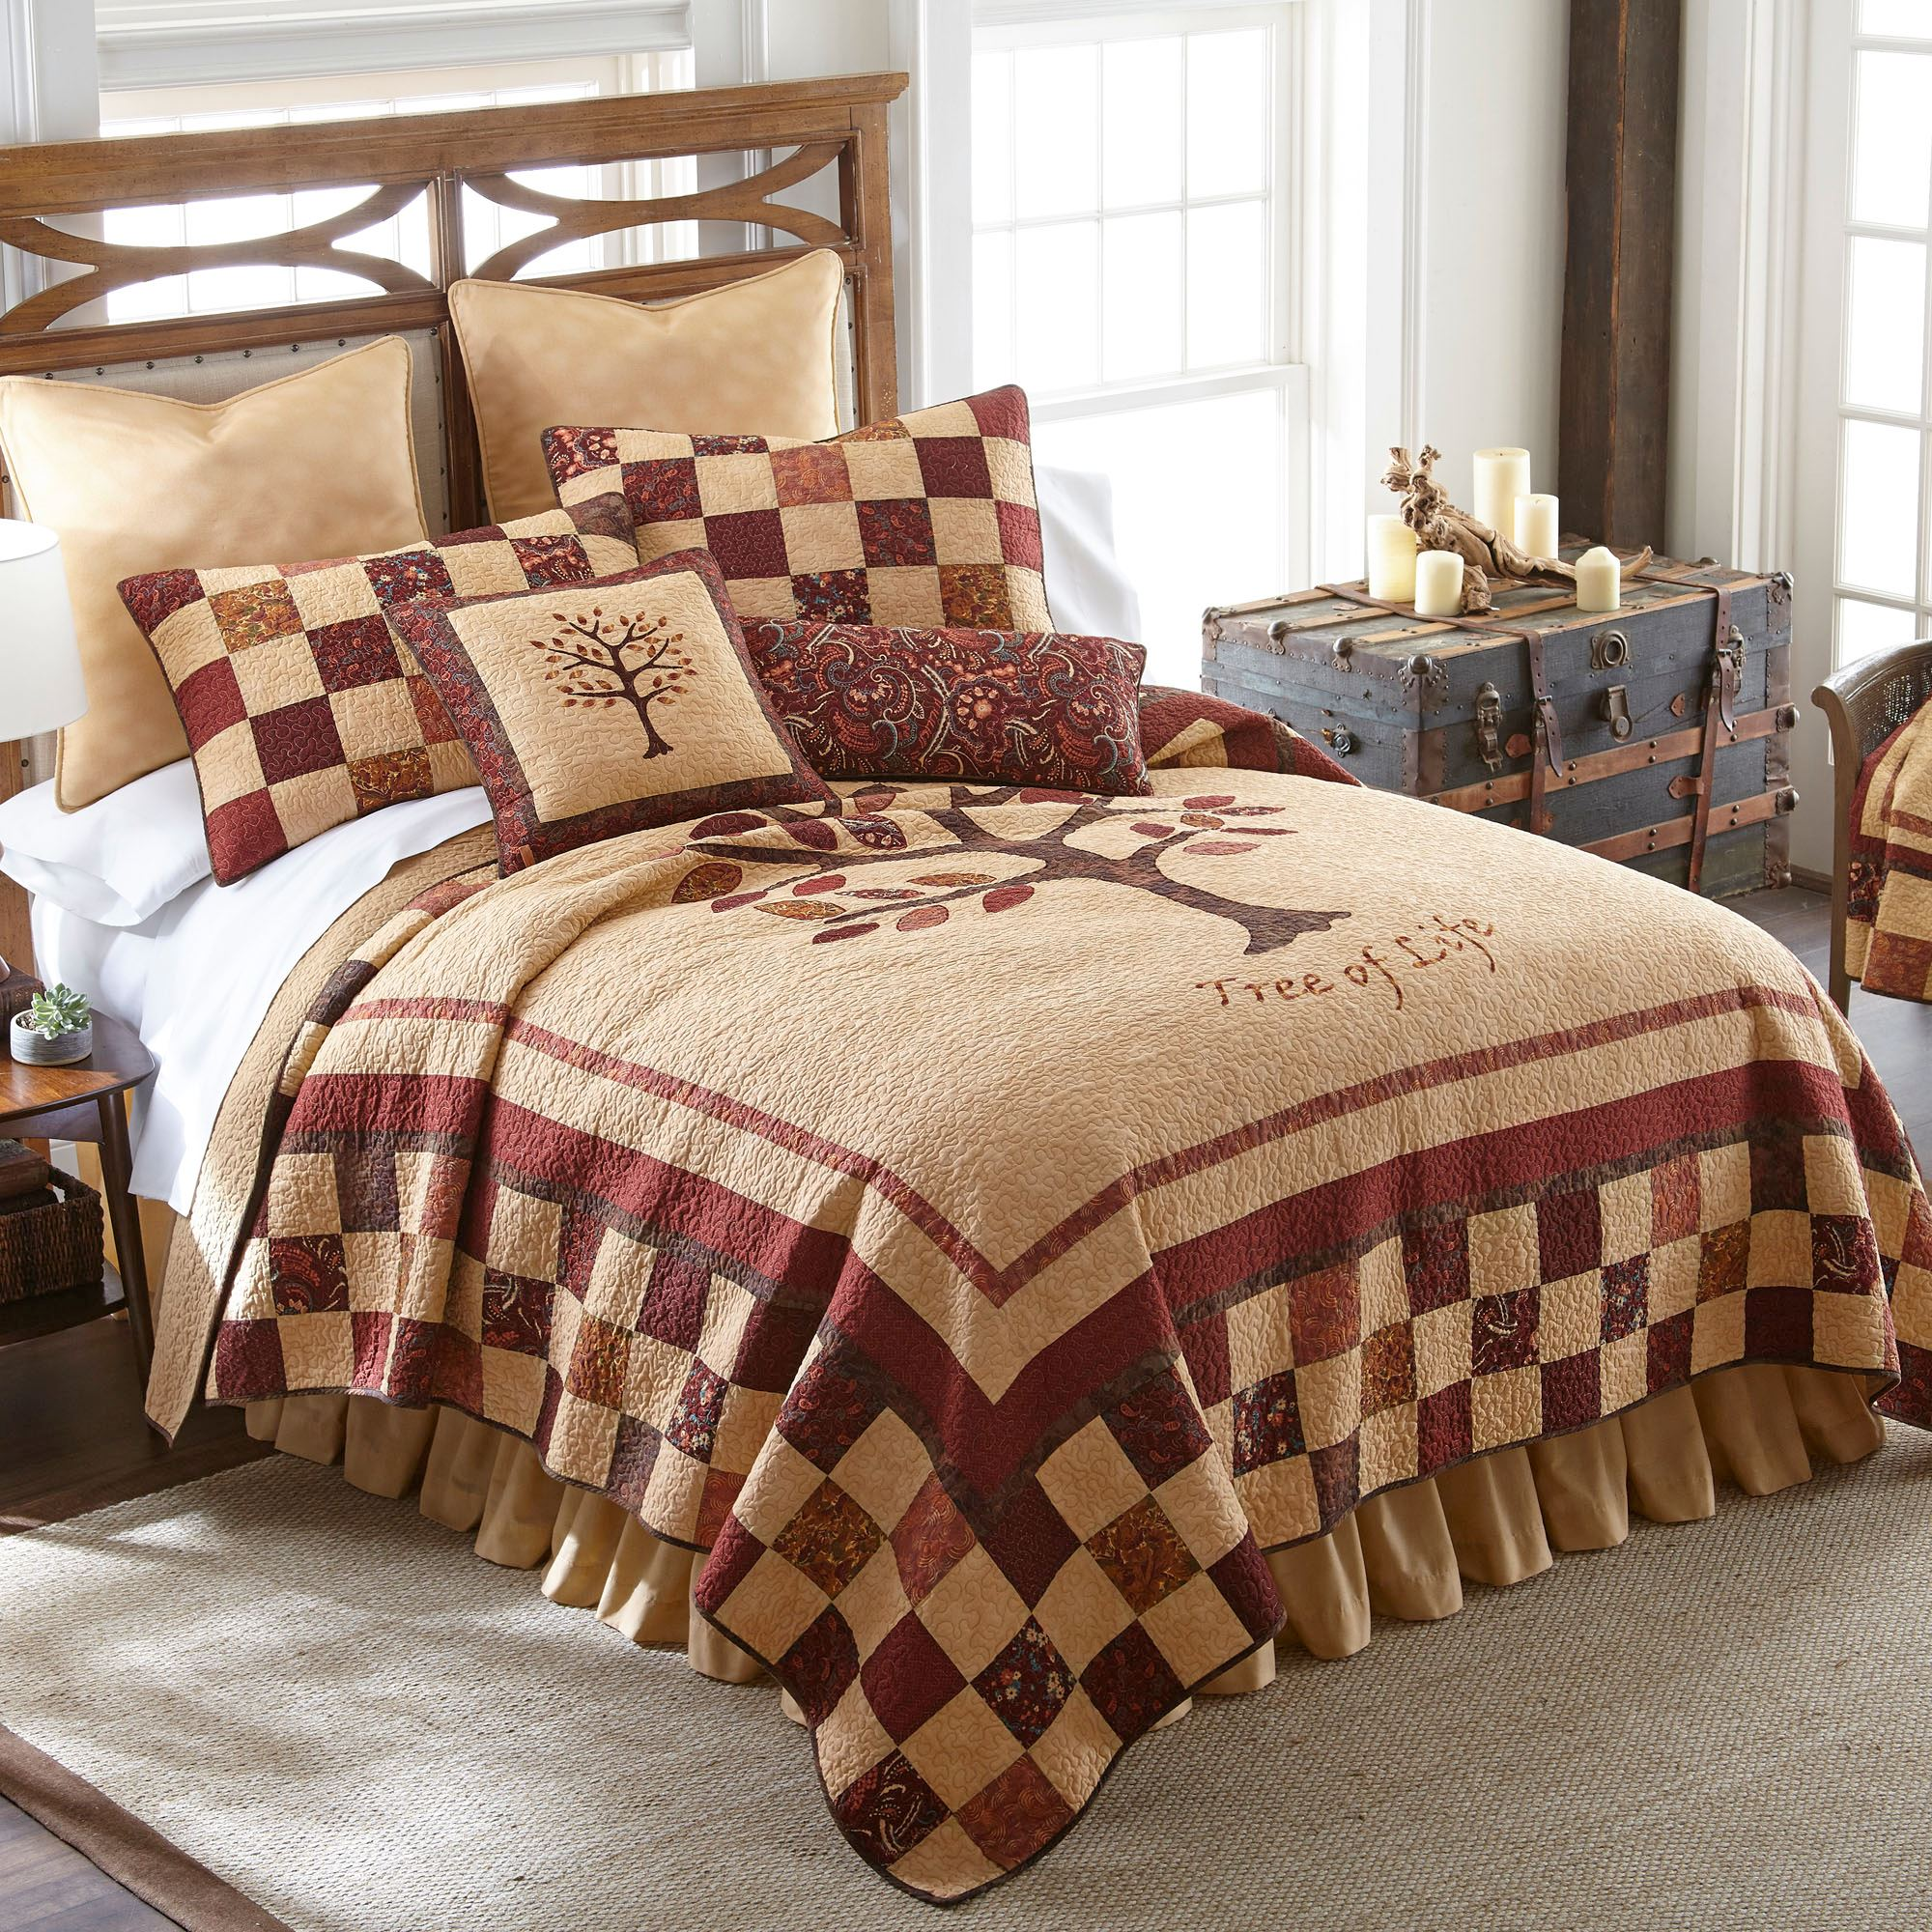 Autumn Tree Of Life Fall Patchwork Quilt Bedding By Donna